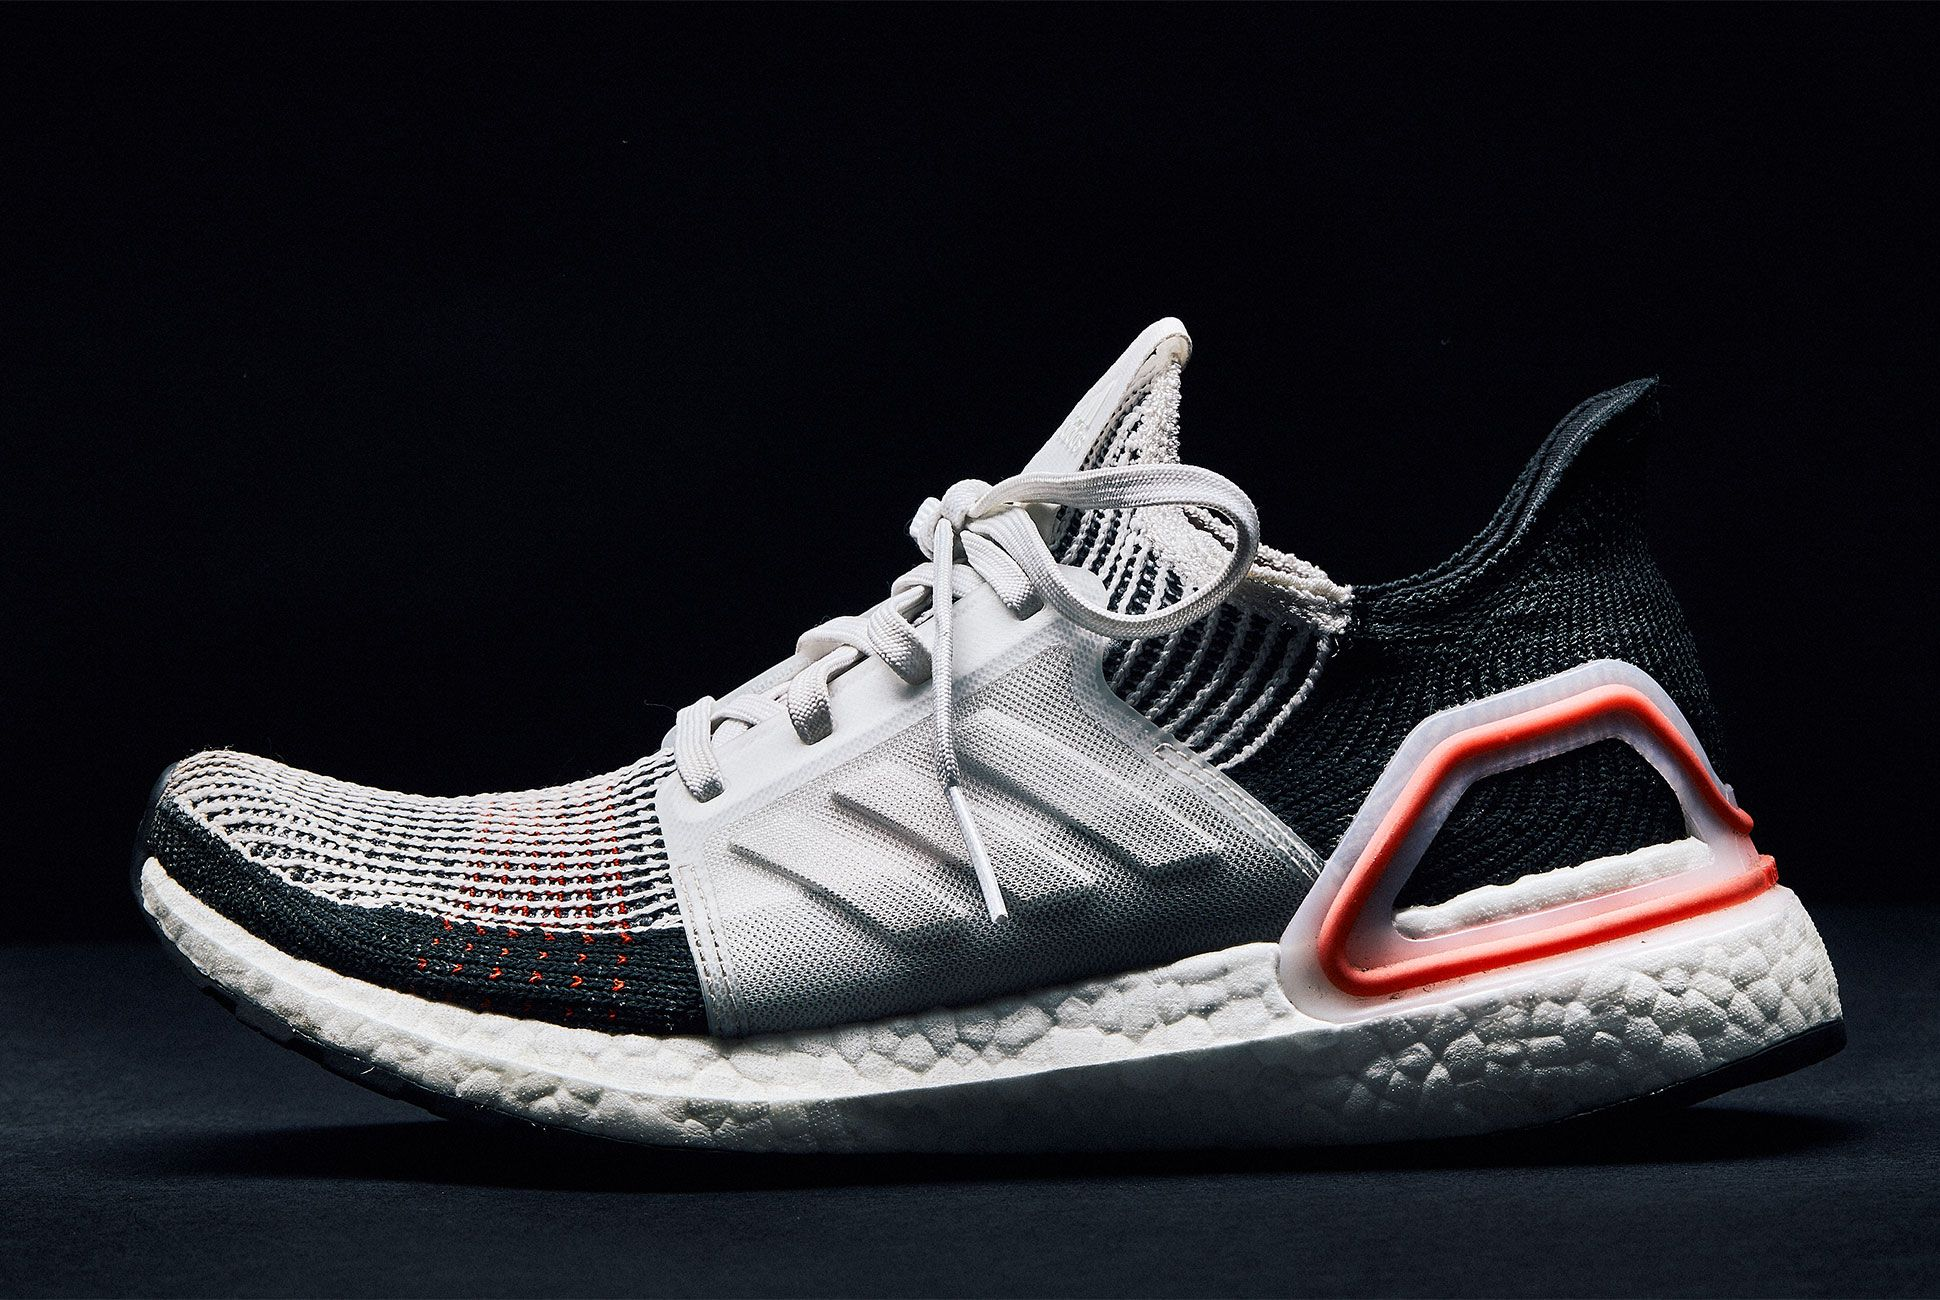 colgante cubo Touhou  The Ever Popular Adidas Ultraboost 19 Gets an Upgrade Adidas • Gear Patrol  | Adidas ultra boost, Running shoes nike, Best running shoes